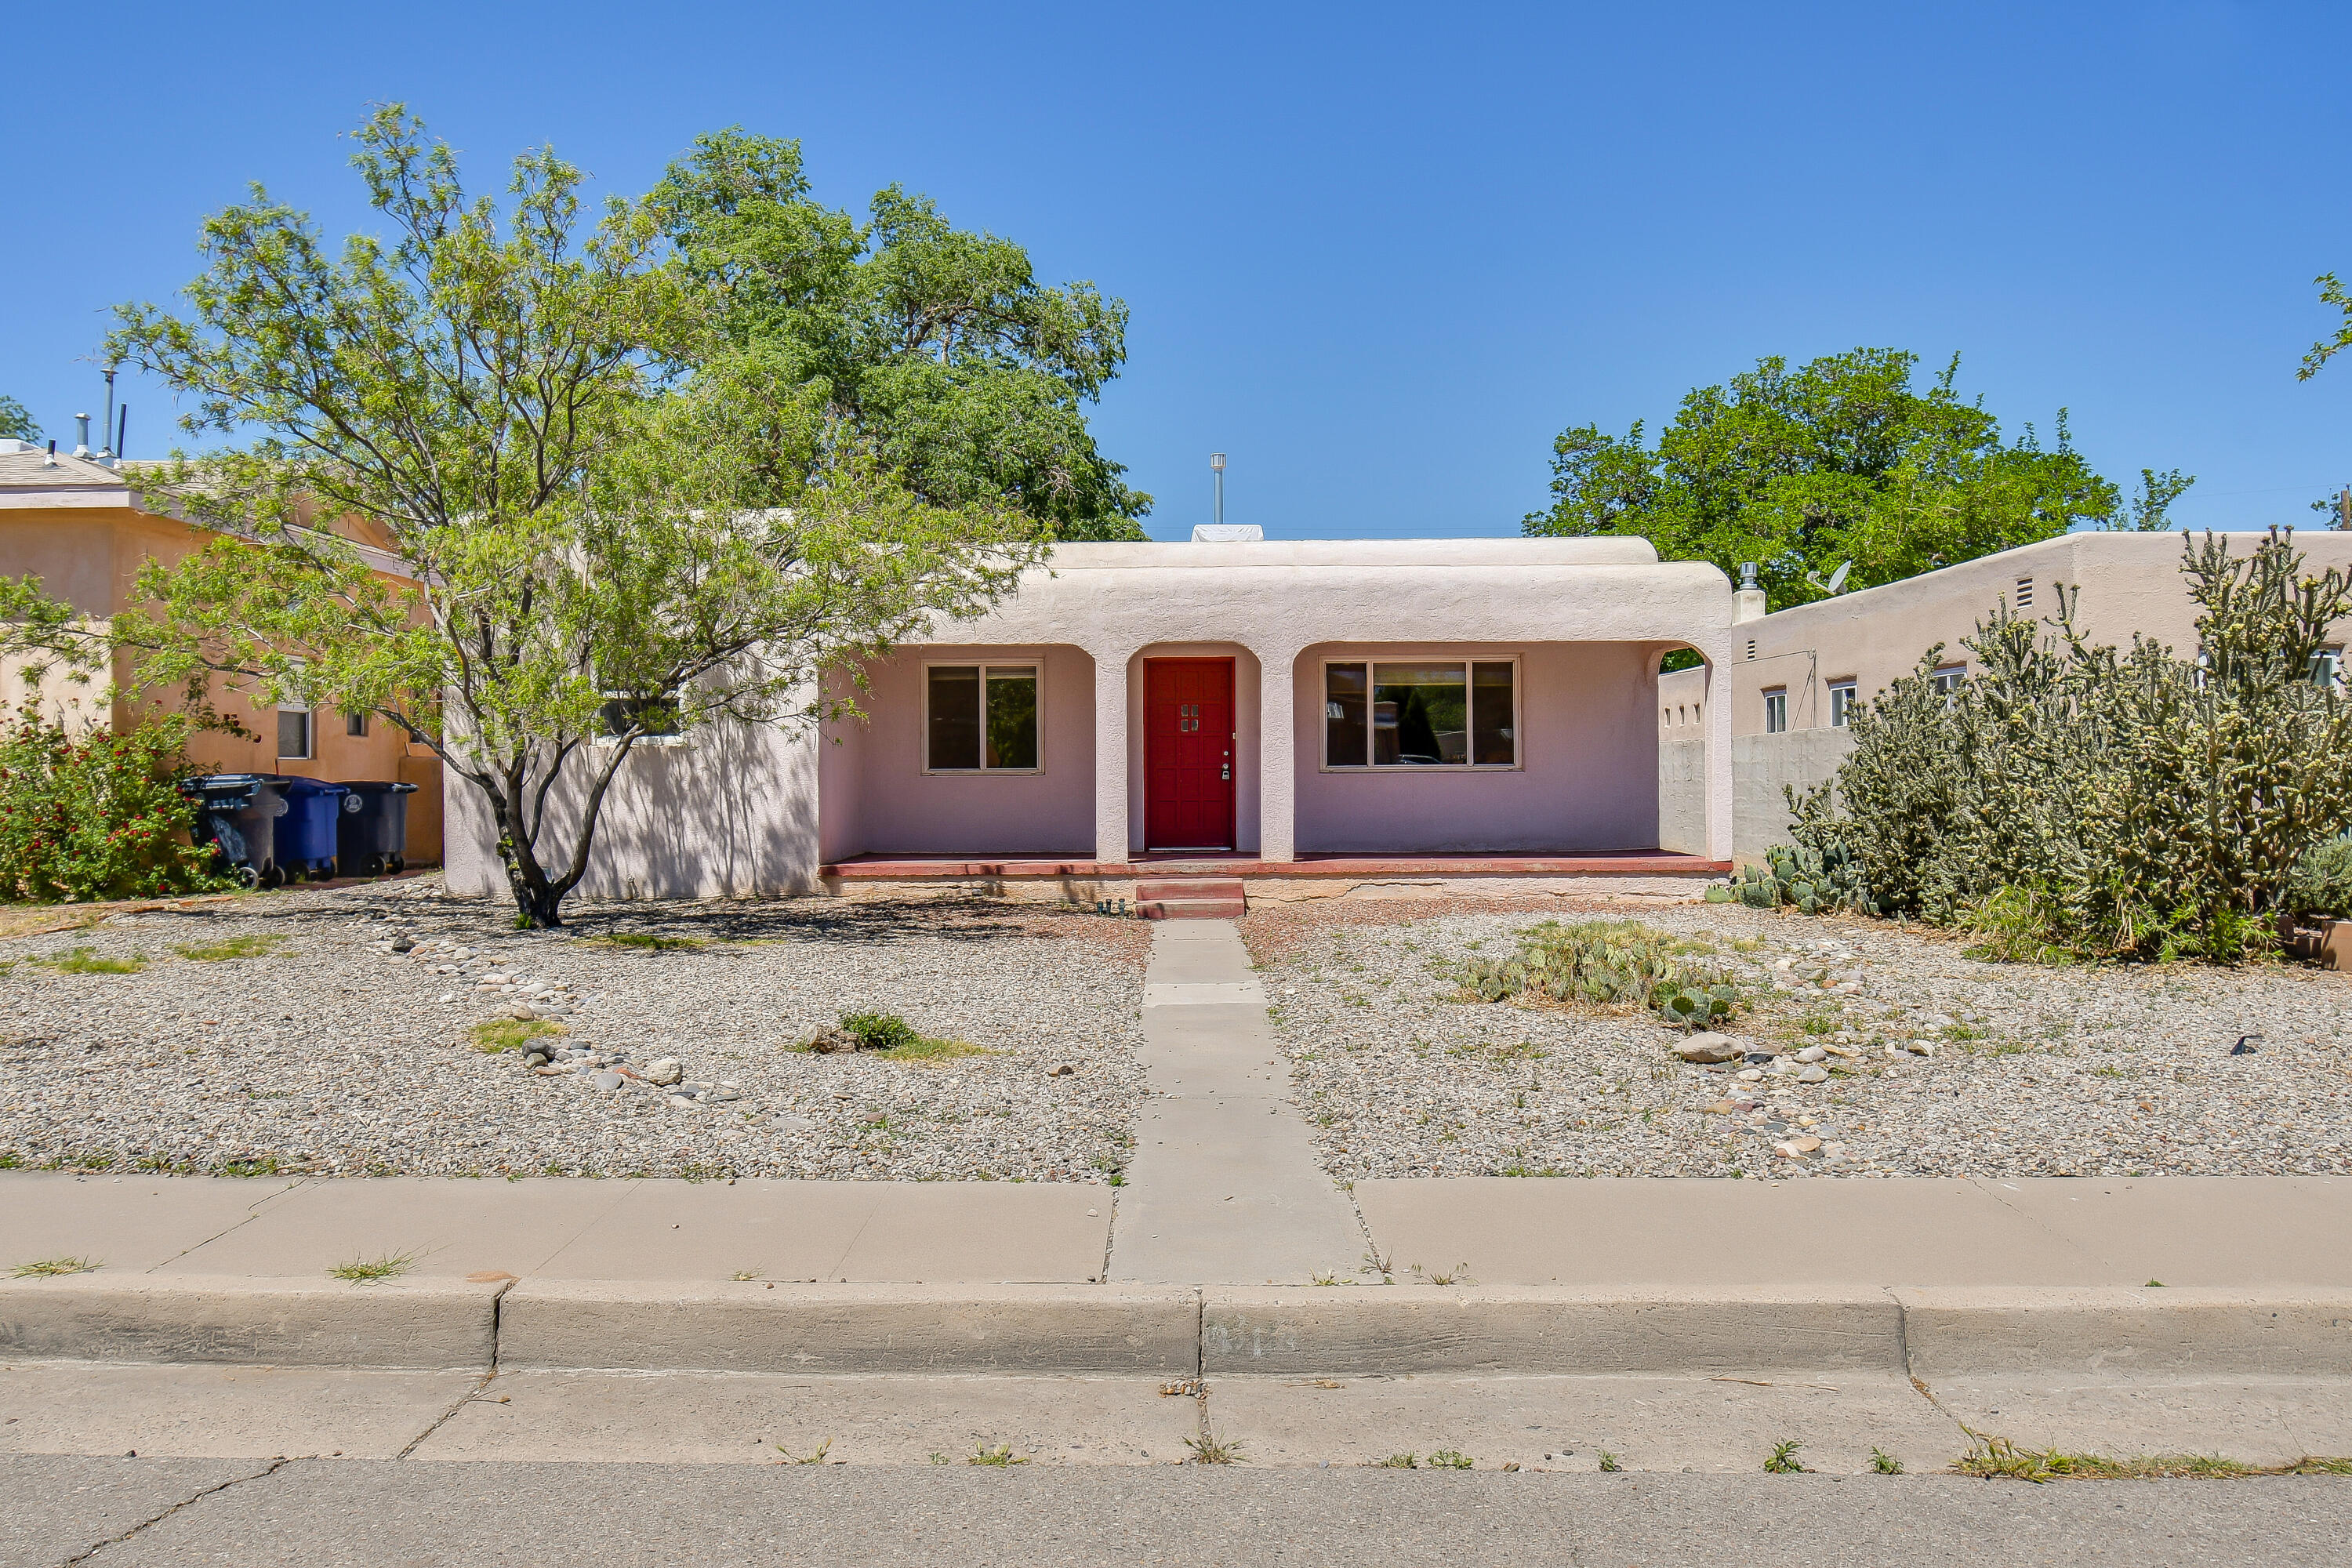 Great opportunity to live in the UNM North area for an affordable price.  This home features hardwood flooring, a nice size kitchen with great storage.  There is a detached garage as well.  Newer HVAC, 2 year old TPO roof over the main house, and a brand new sewer line was installed a few weeks ago.  Come see this terrific home today.